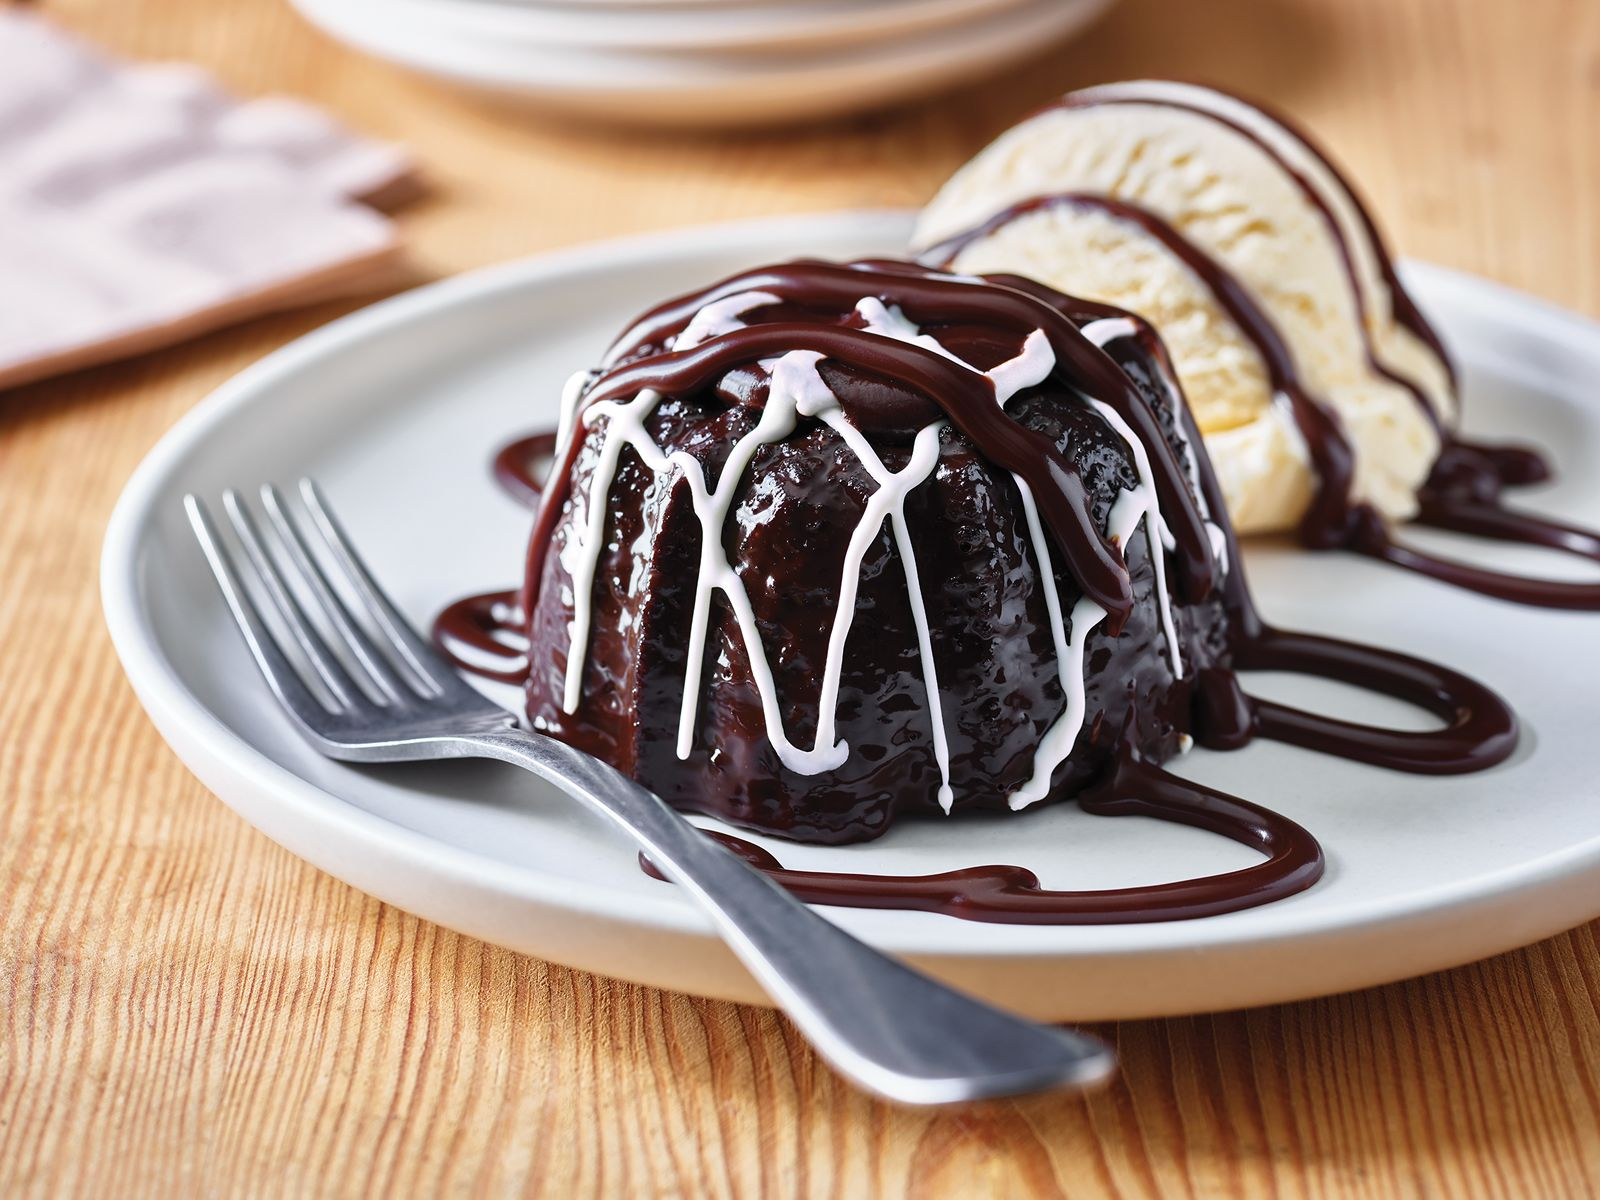 FREE Triple Chocolate Meltdown Is On the Menu at Select Applebee's in Texas on Black Friday